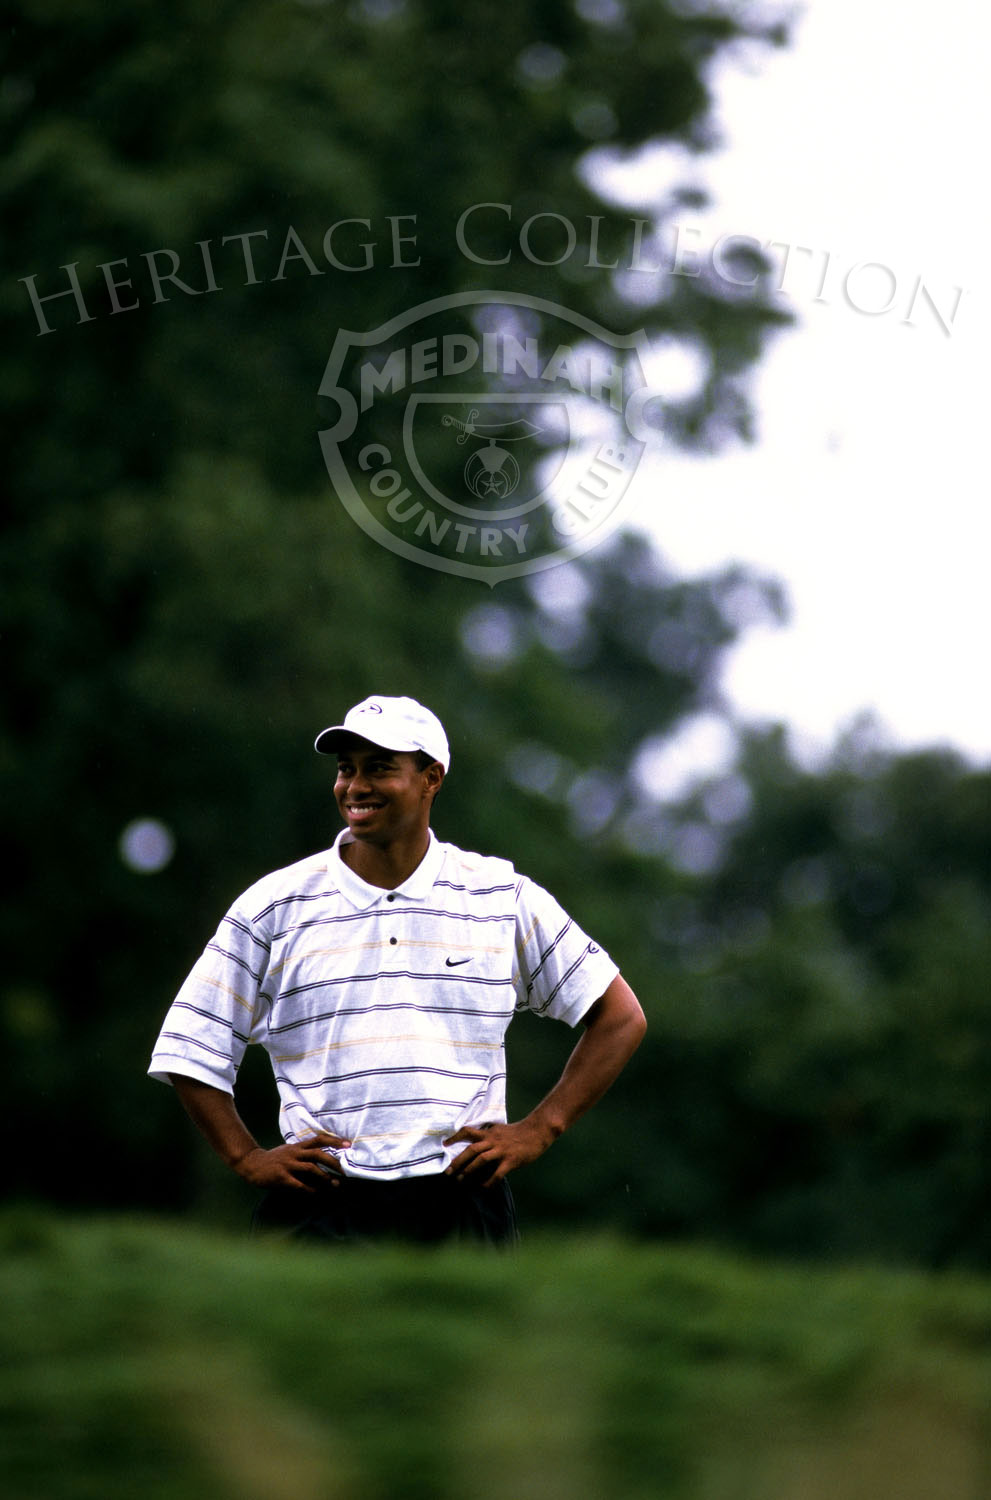 Round 1: Tiger Woods: Photographer: Montana Pritchard